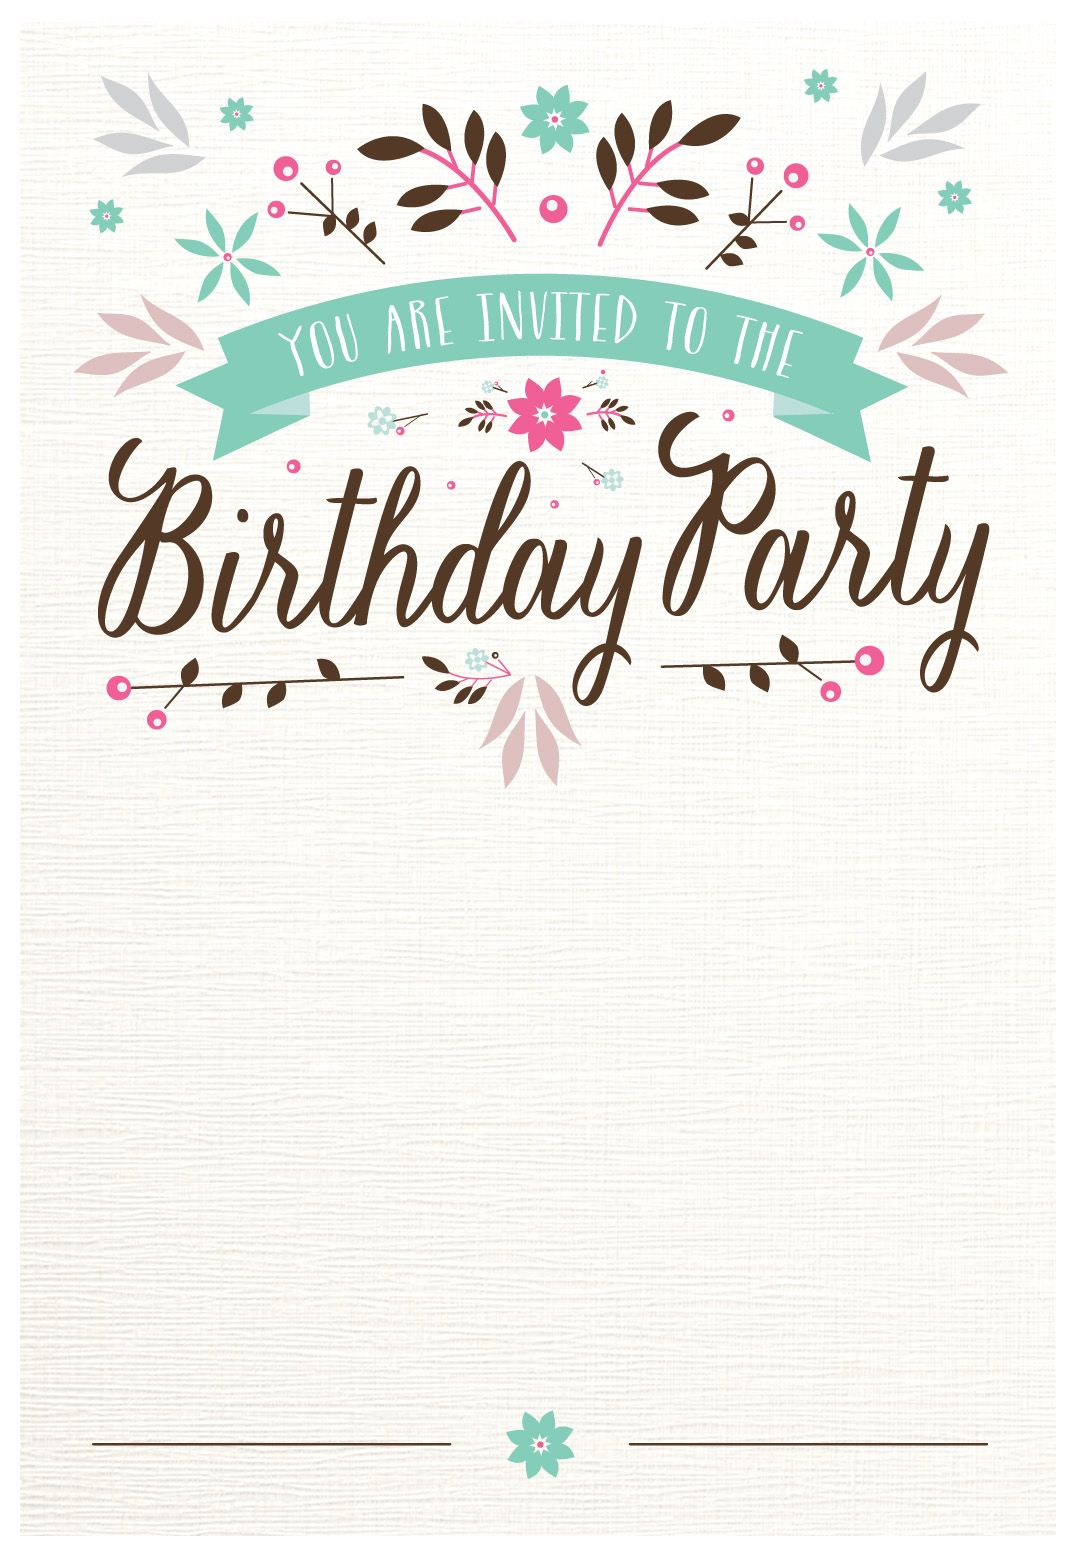 free customizable birthday invitation templates ; 24ec7eeae4067c318f3f0bc0a00248df